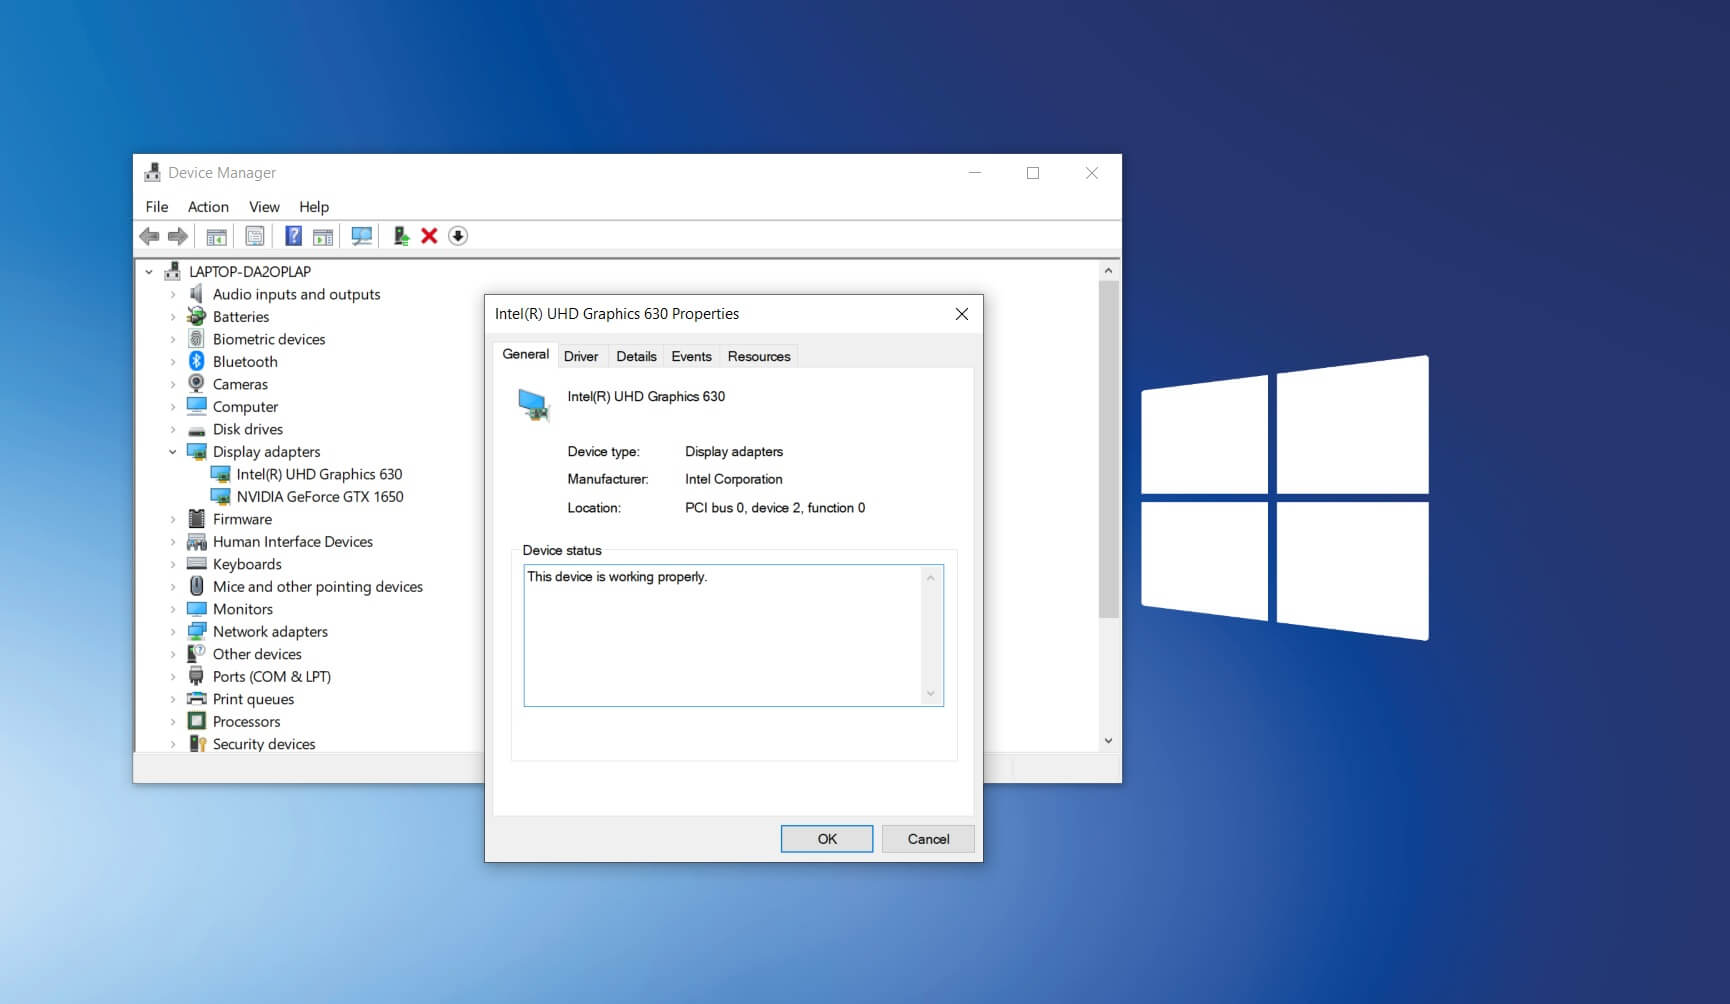 Windows 10 Device Manager loses ability to update drivers over internet